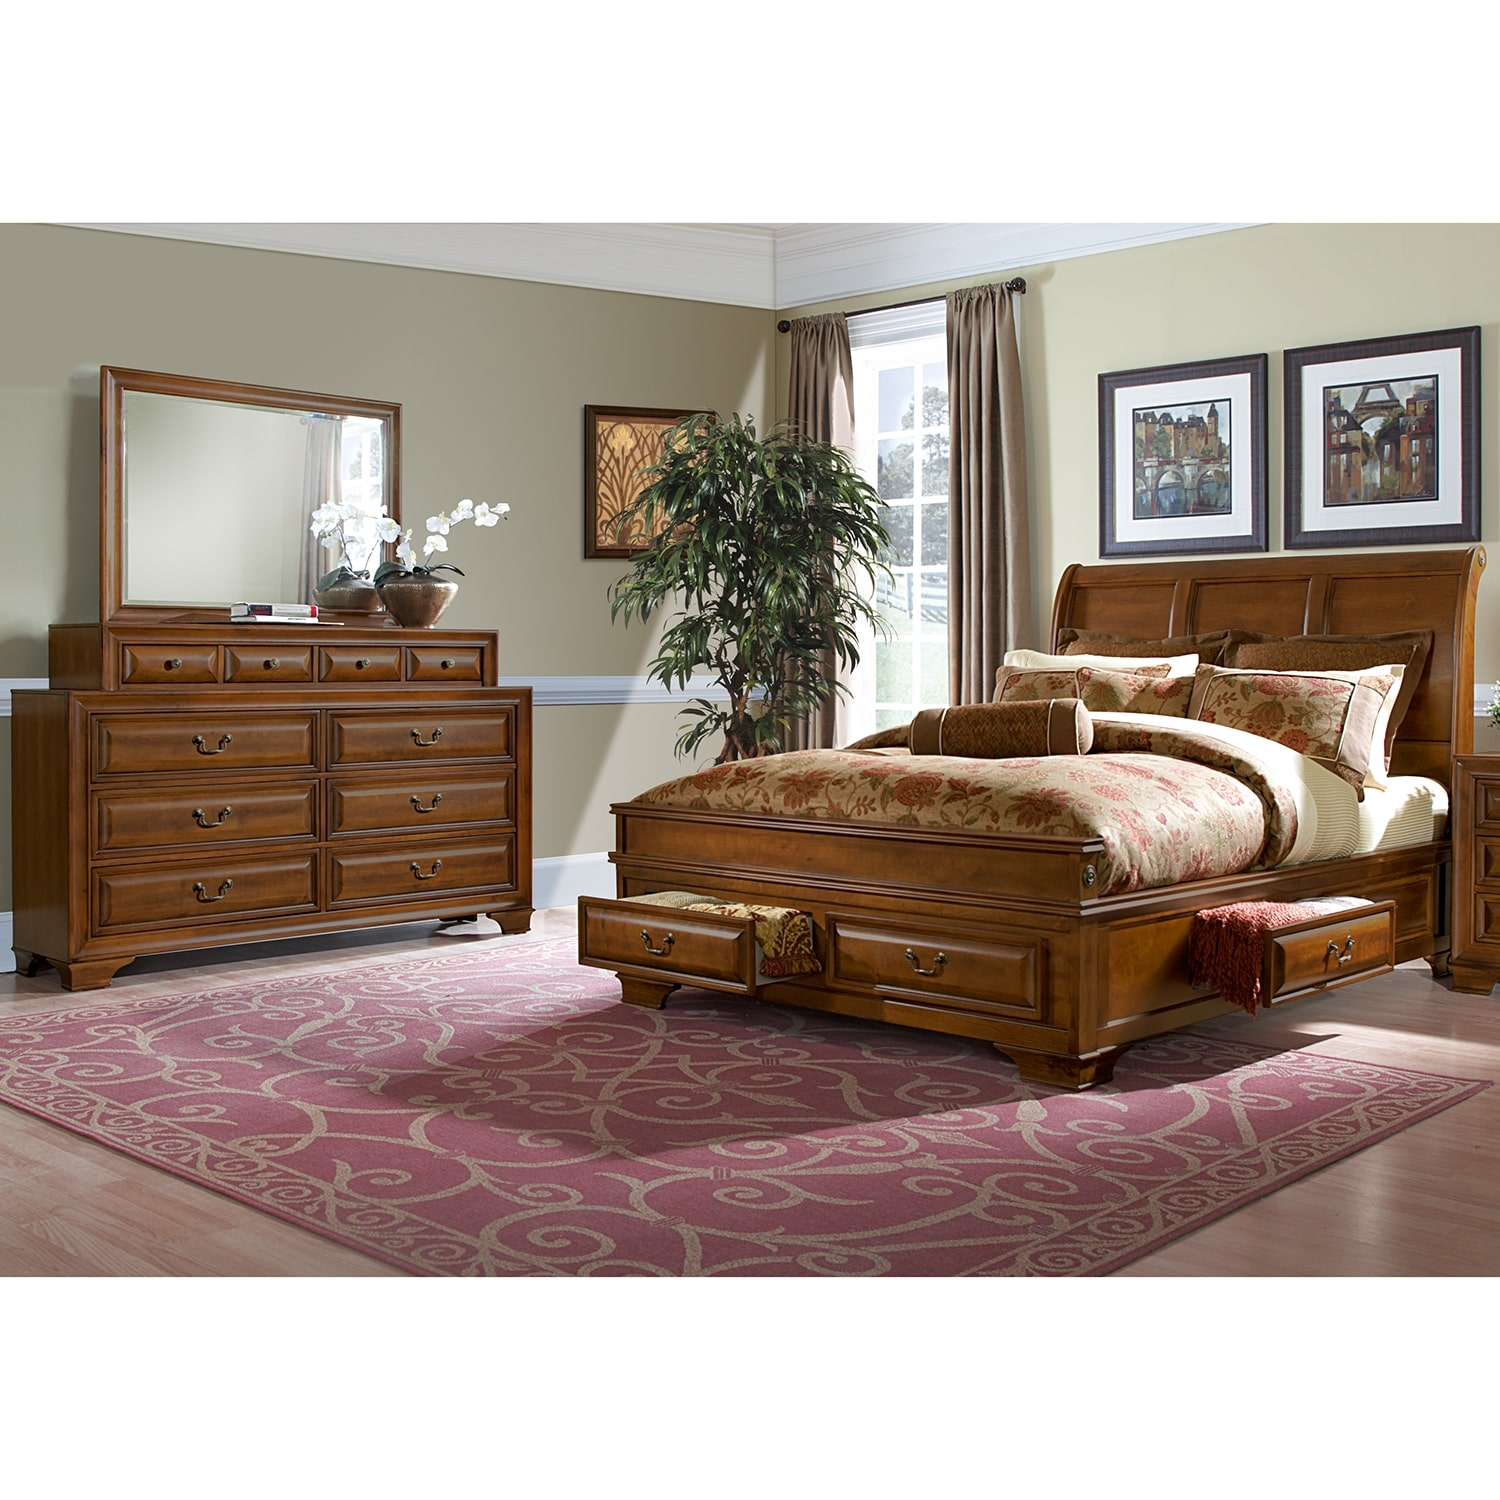 Bedroom Furniture - Sanibelle 5-Piece King Storage Bedroom Set - Pine